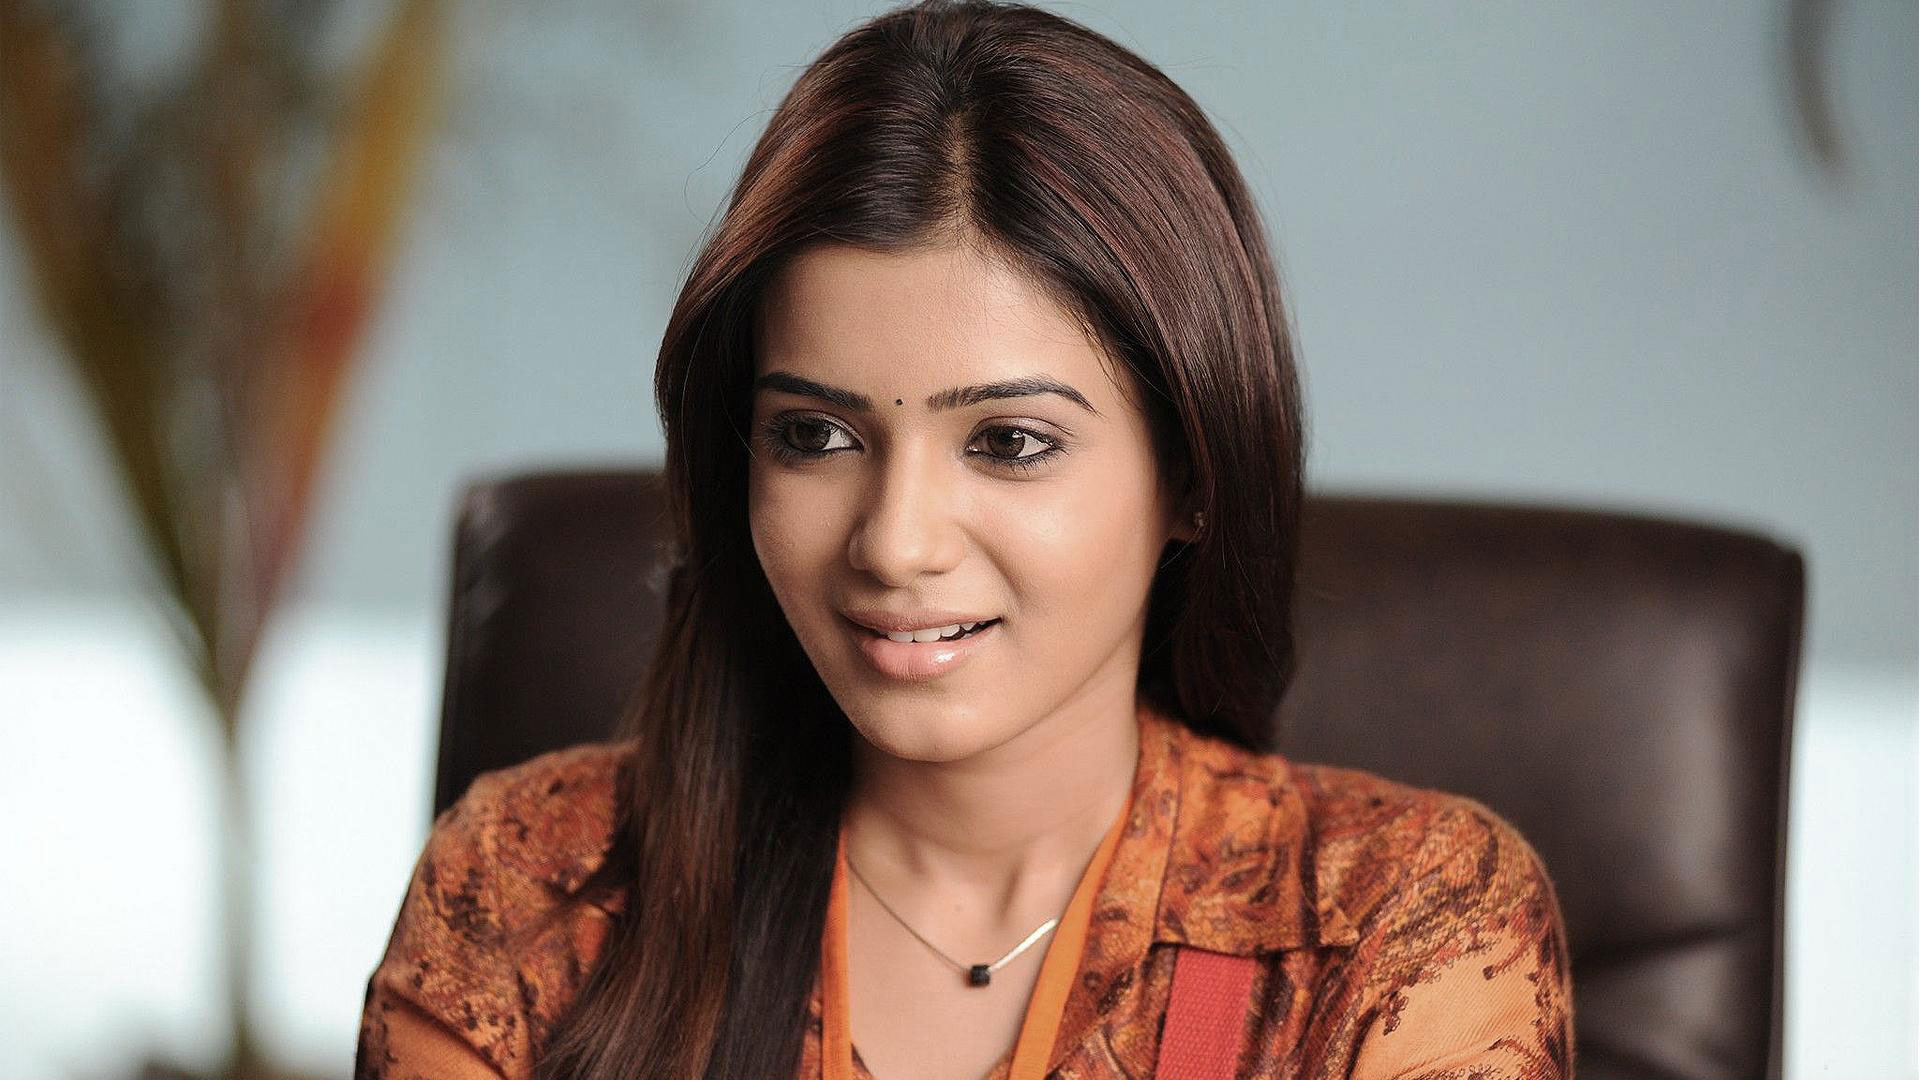 Samantha Wallpaper -10489